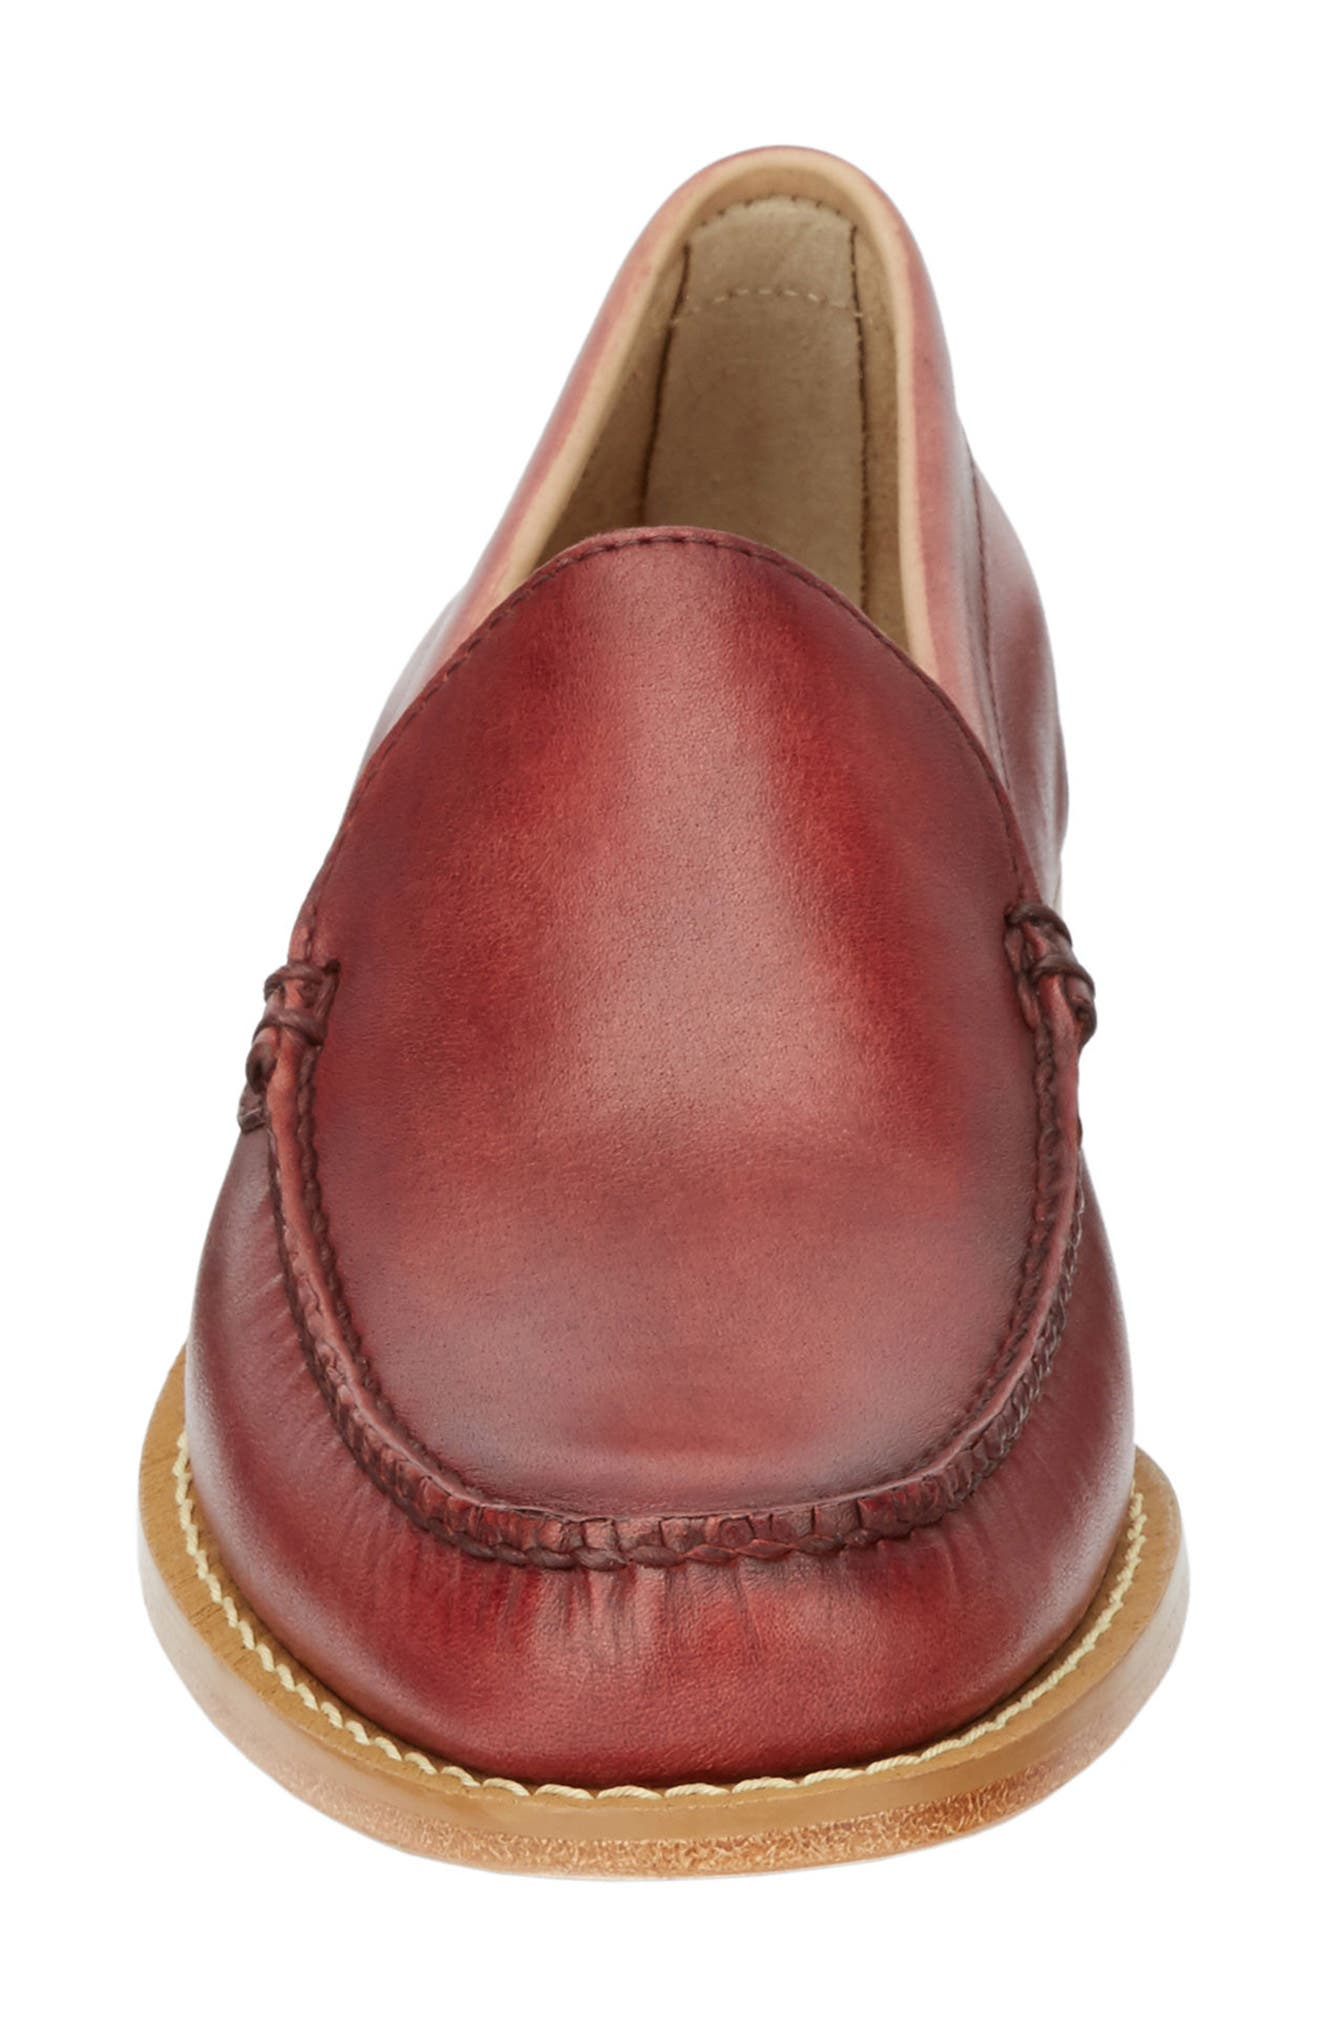 Moc Toe Loafer,                             Alternate thumbnail 4, color,                             RED LEATHER